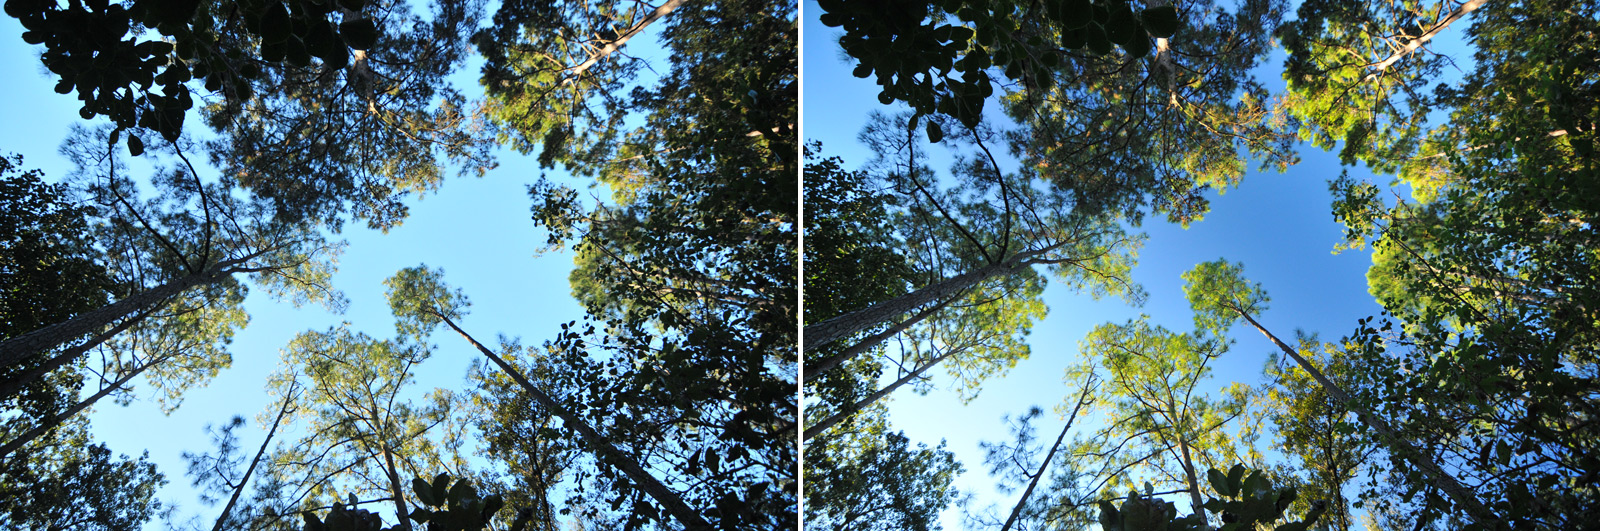 Polarizing filter effect looking up at the sky through pine trees